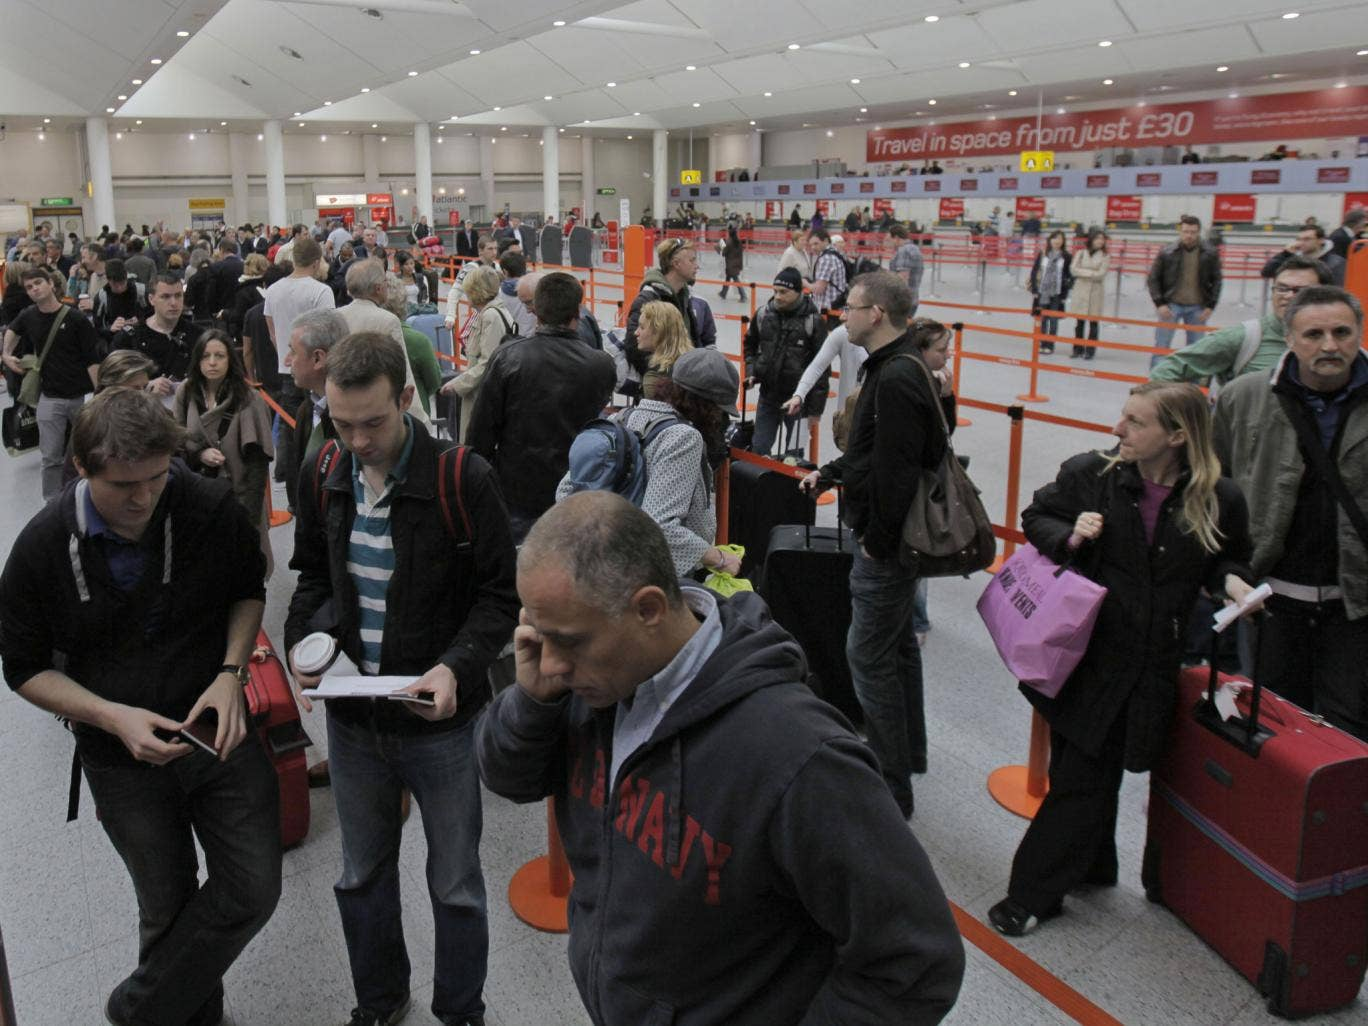 Flight disruption at Gatwick airport due to volcanic ash